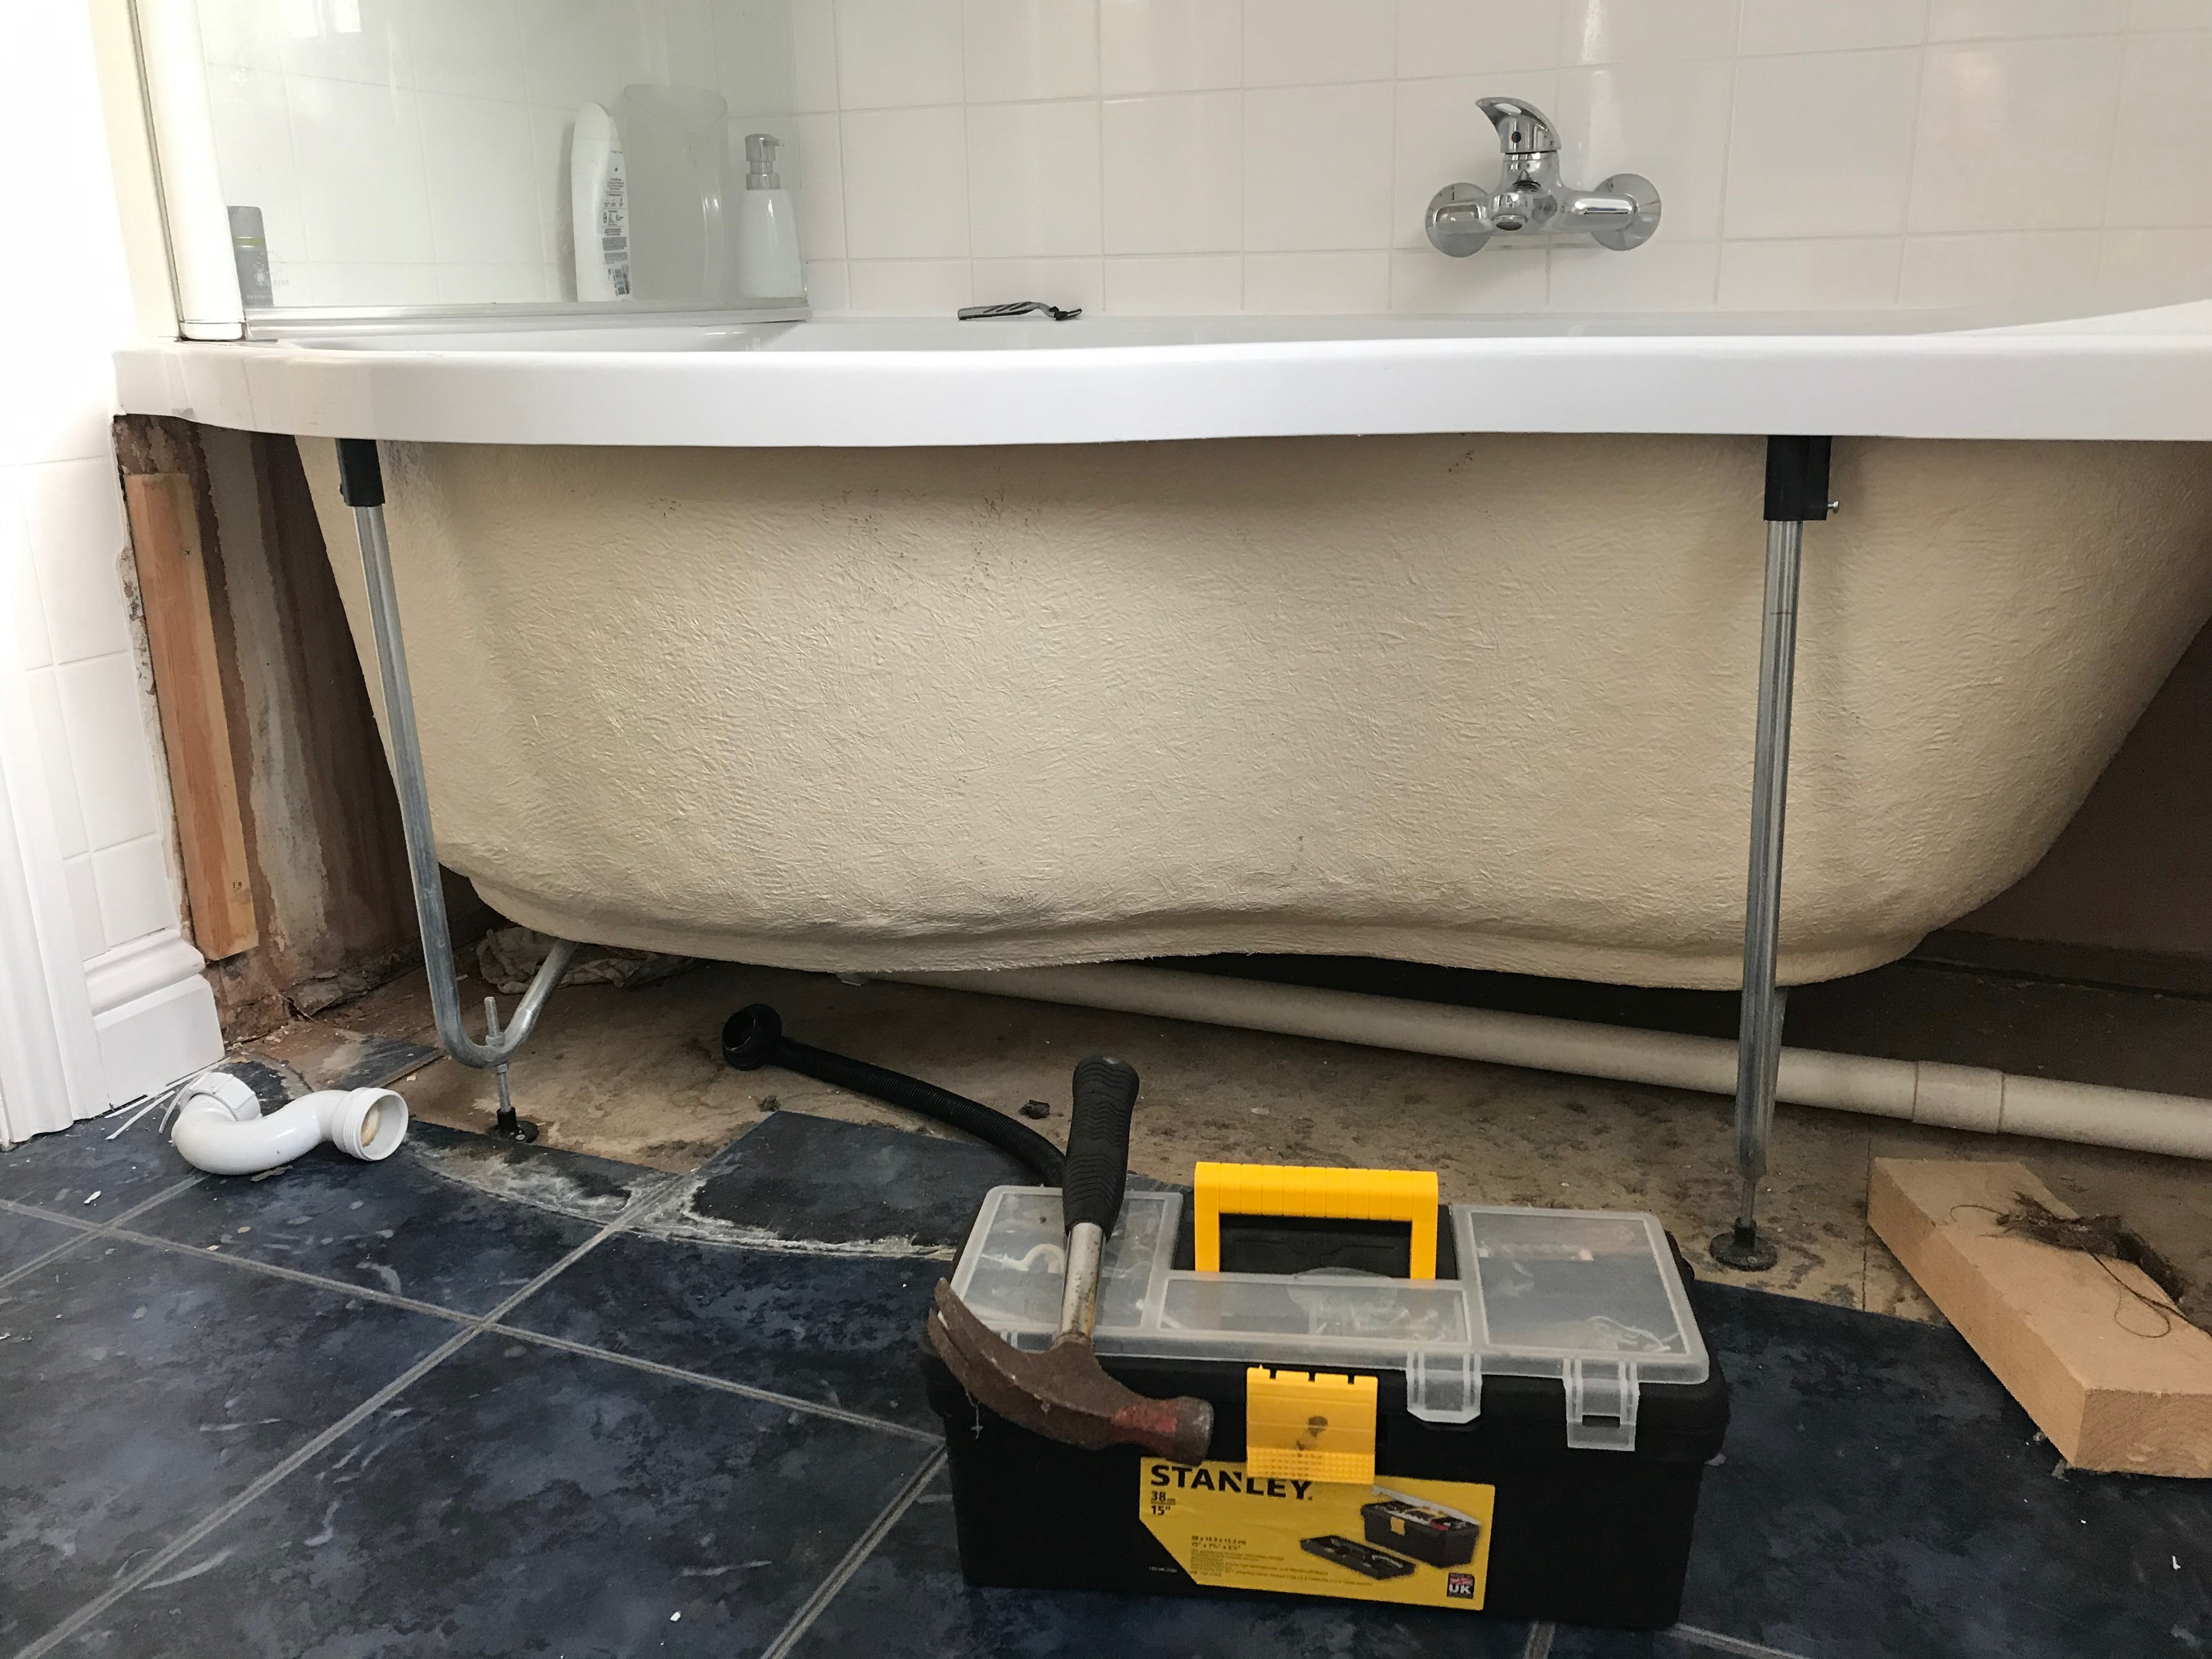 A bath with the side panel off and the pipes exposed